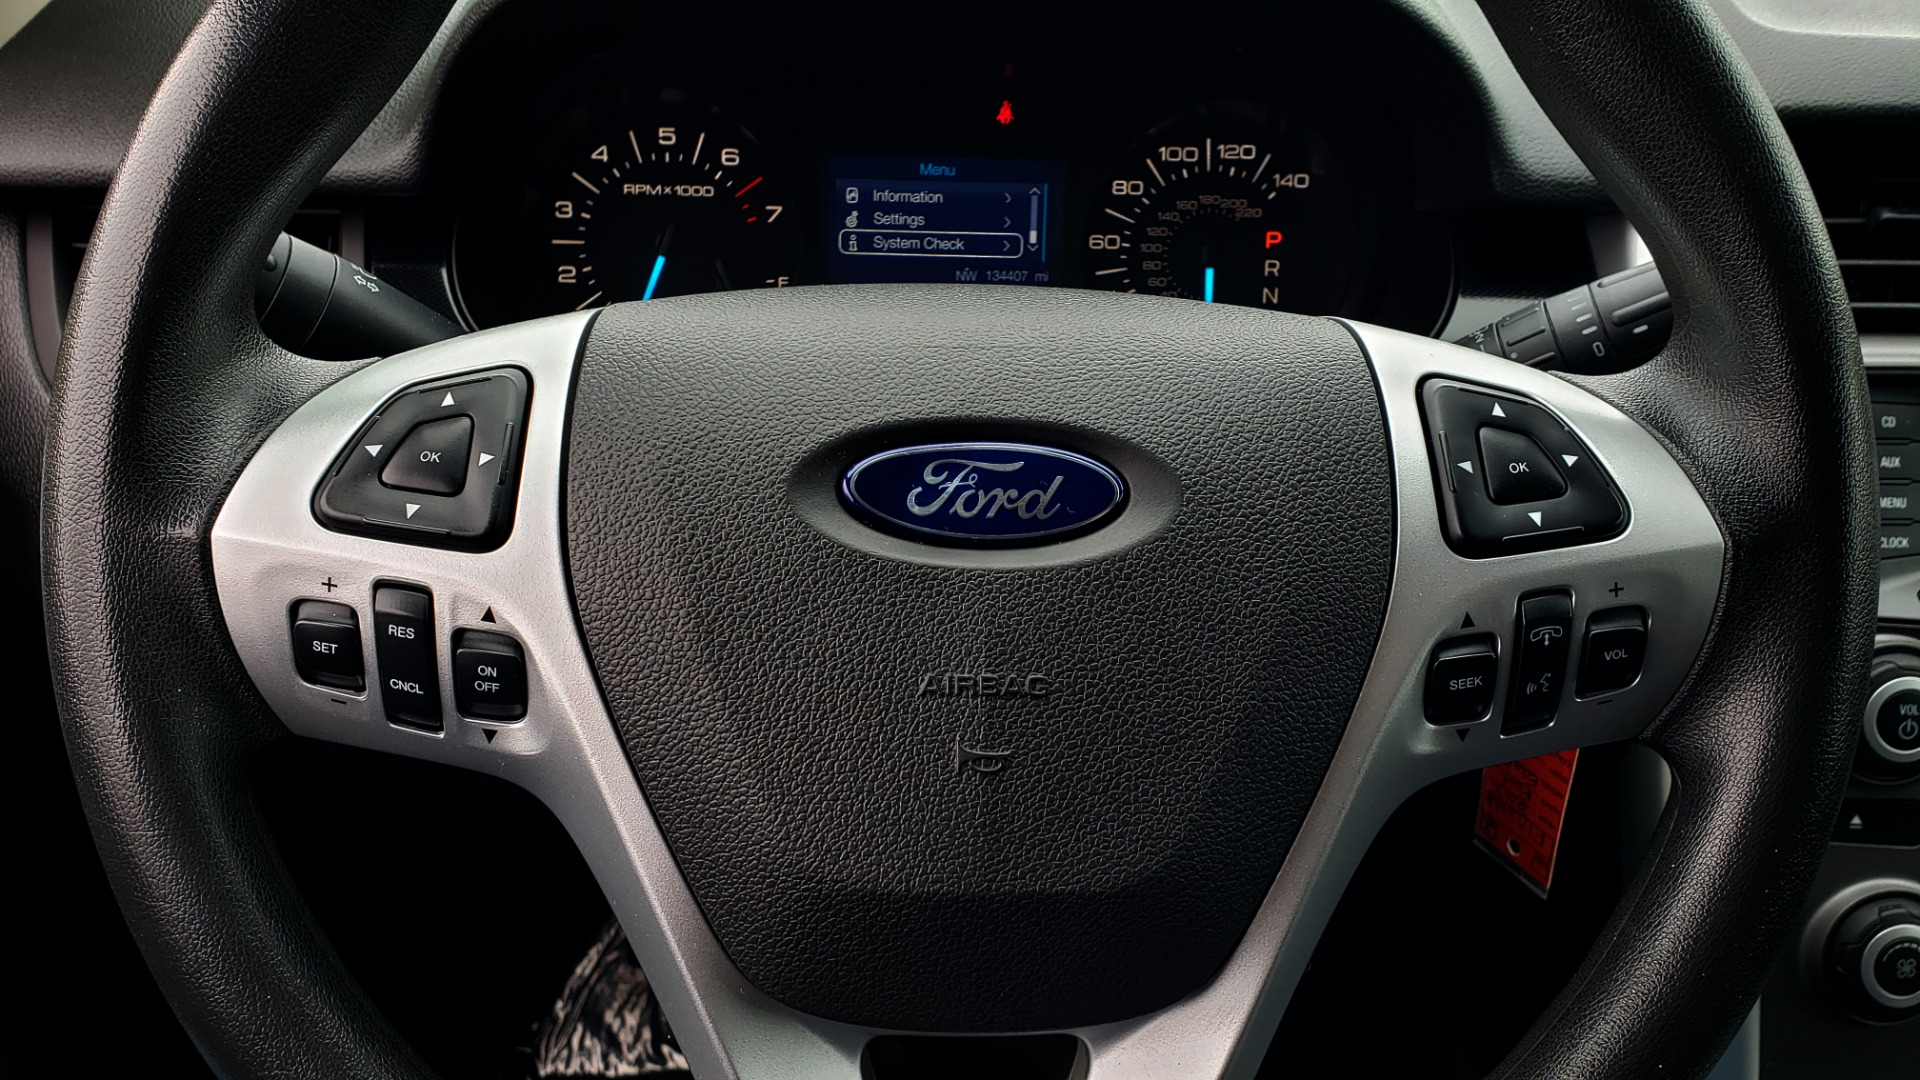 Used 2013 Ford EDGE SE / AWD / 18 IN WHEELS / SYNC / 3.5L V6 / AUTO for sale Sold at Formula Imports in Charlotte NC 28227 33